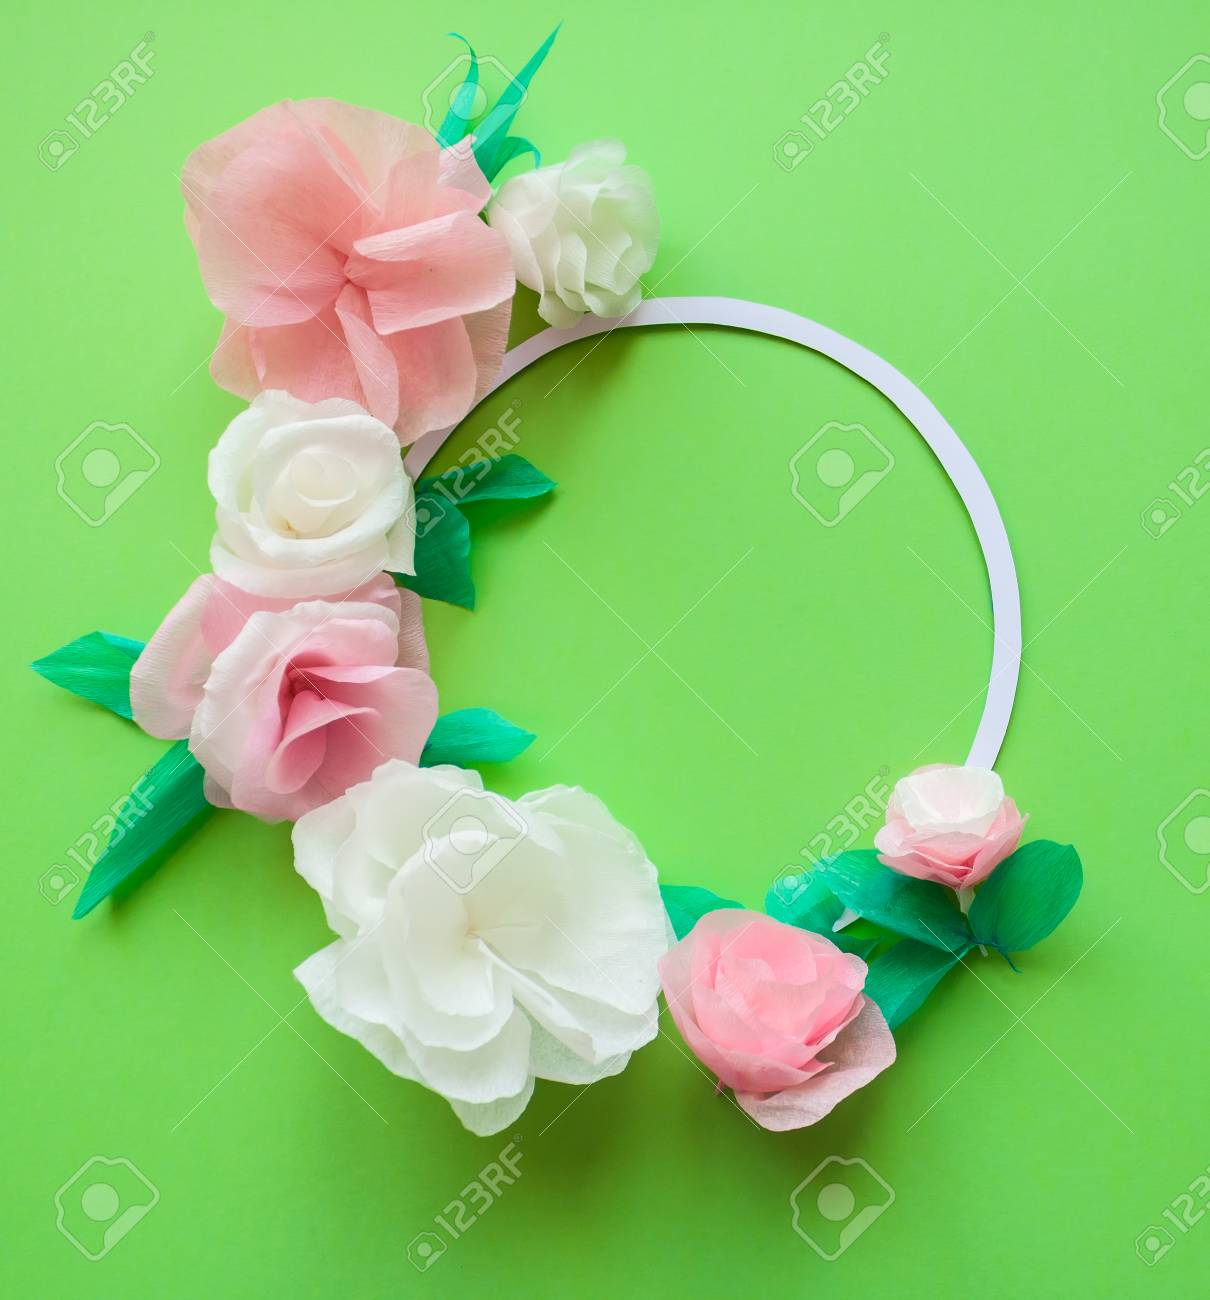 Round Frame With Color Paper Flowers On The Green Background